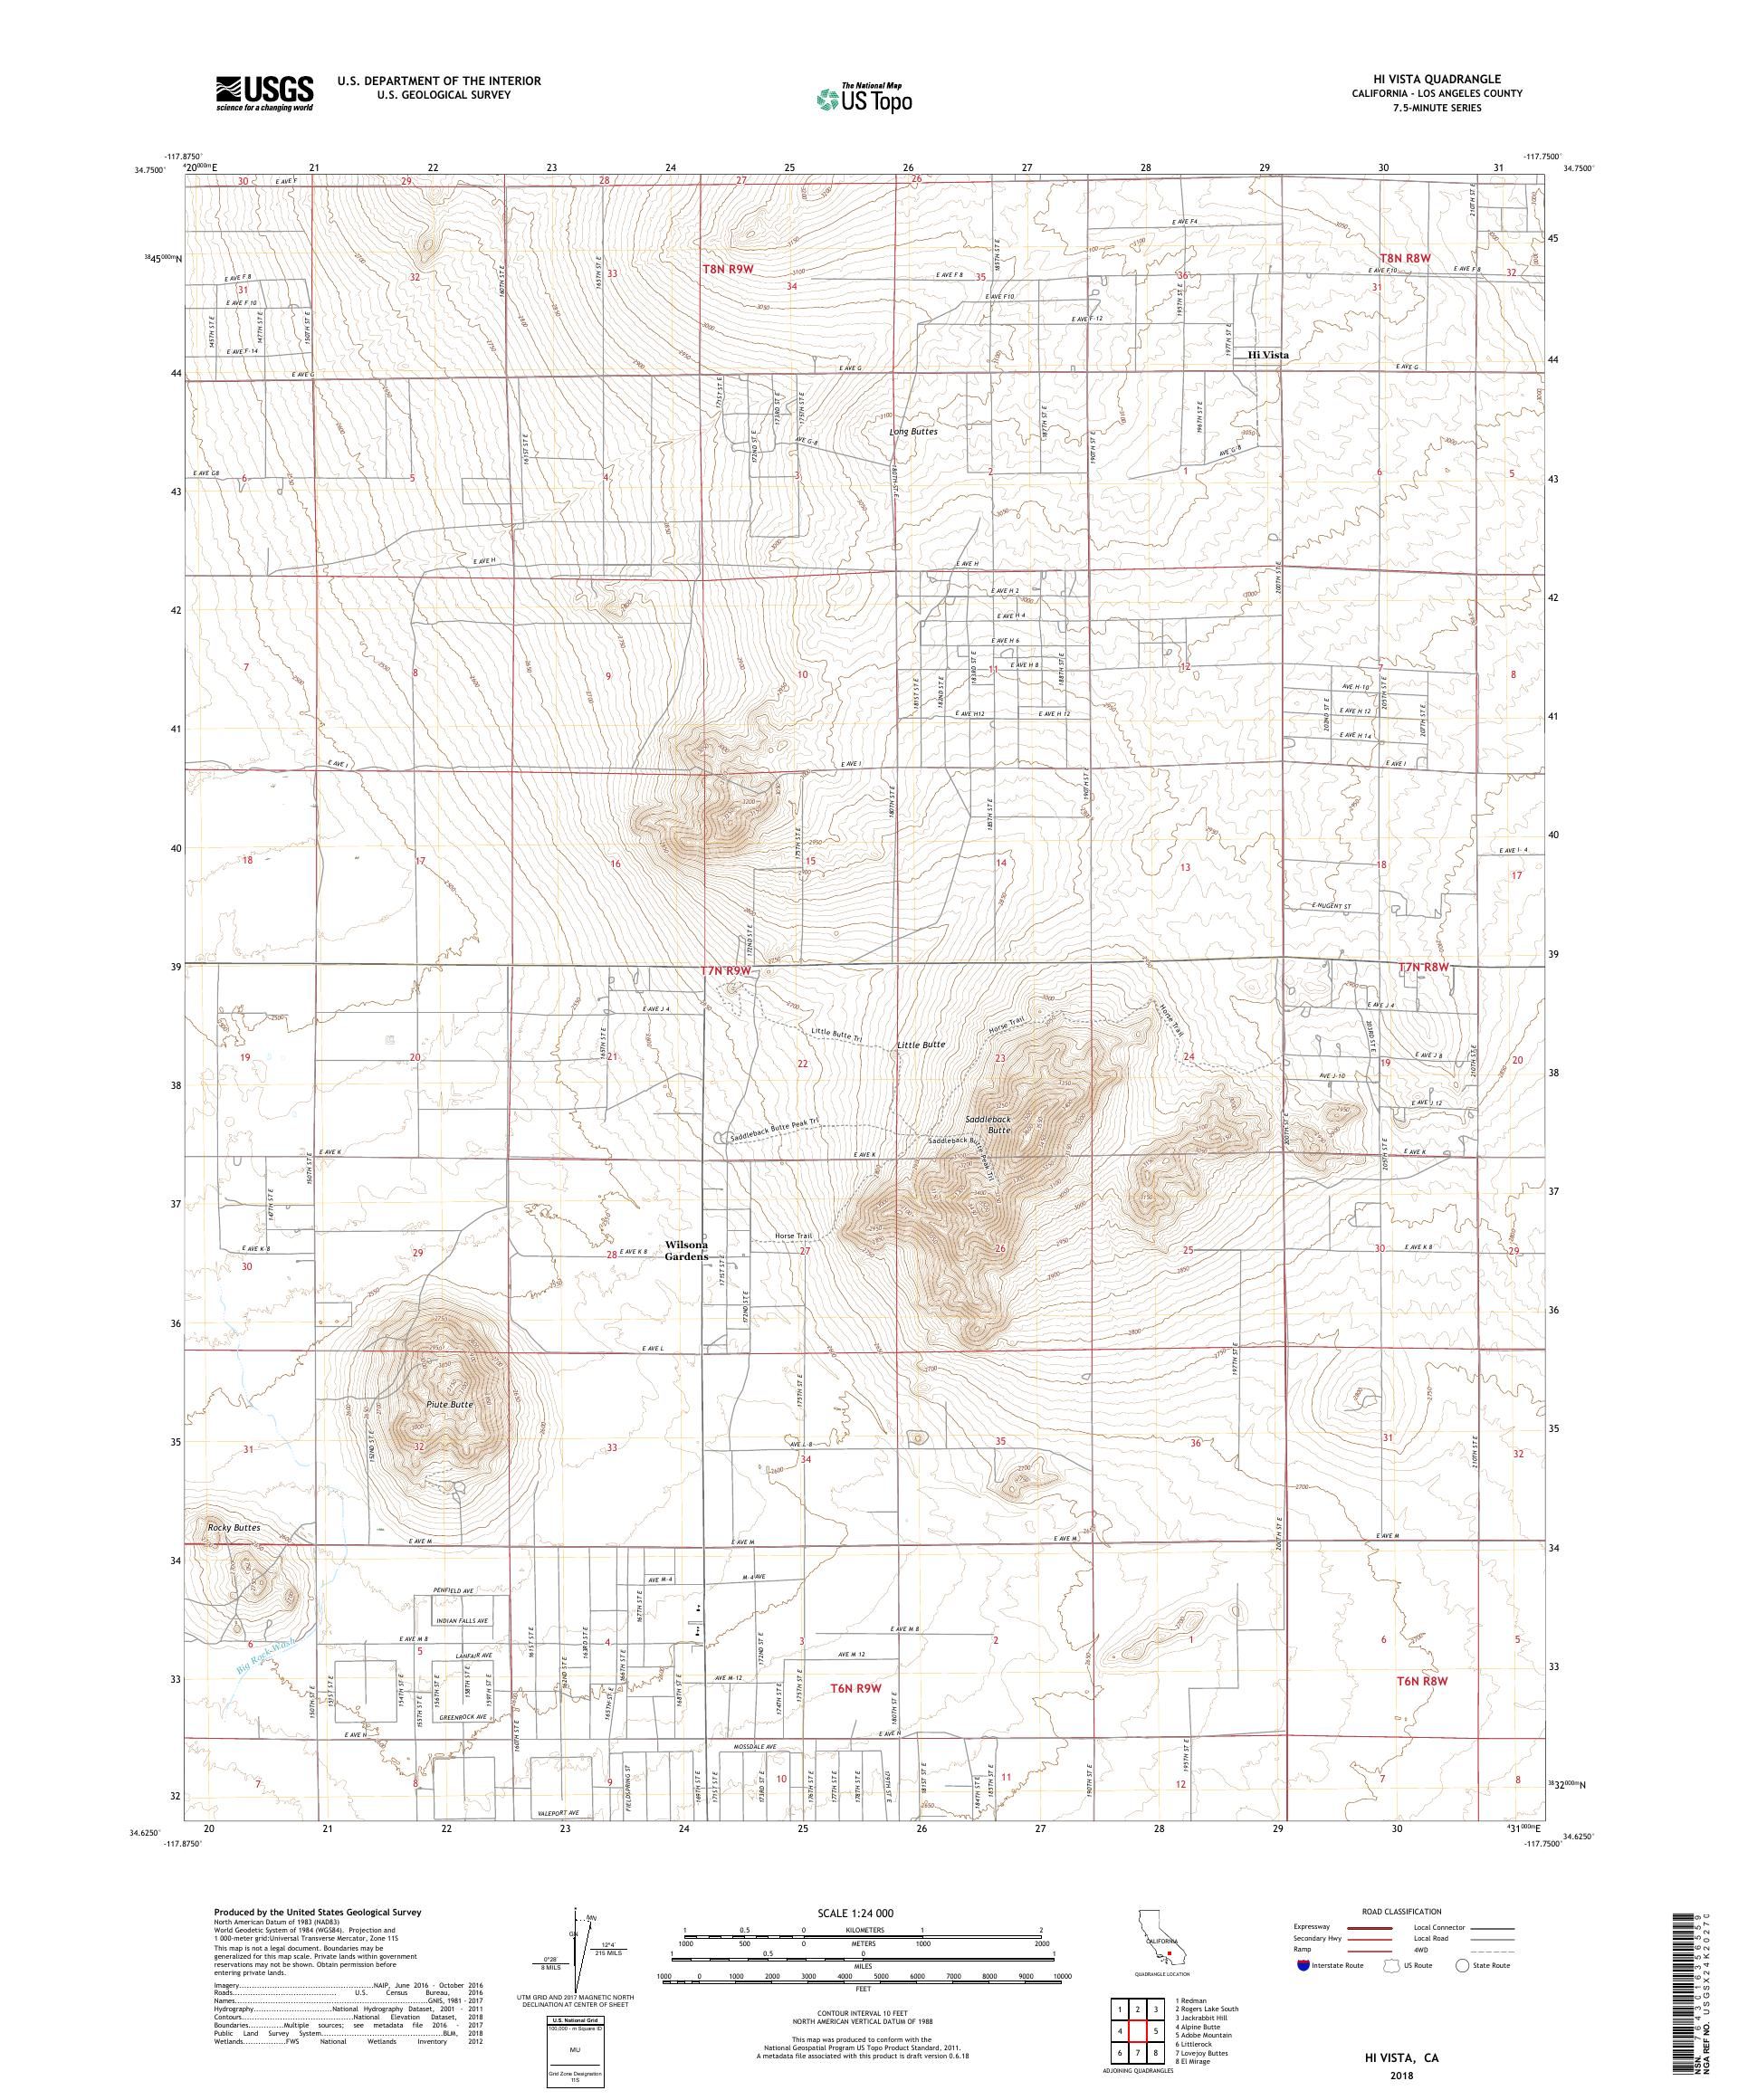 MyTopo Hi Vista, California USGS Quad Topo Map